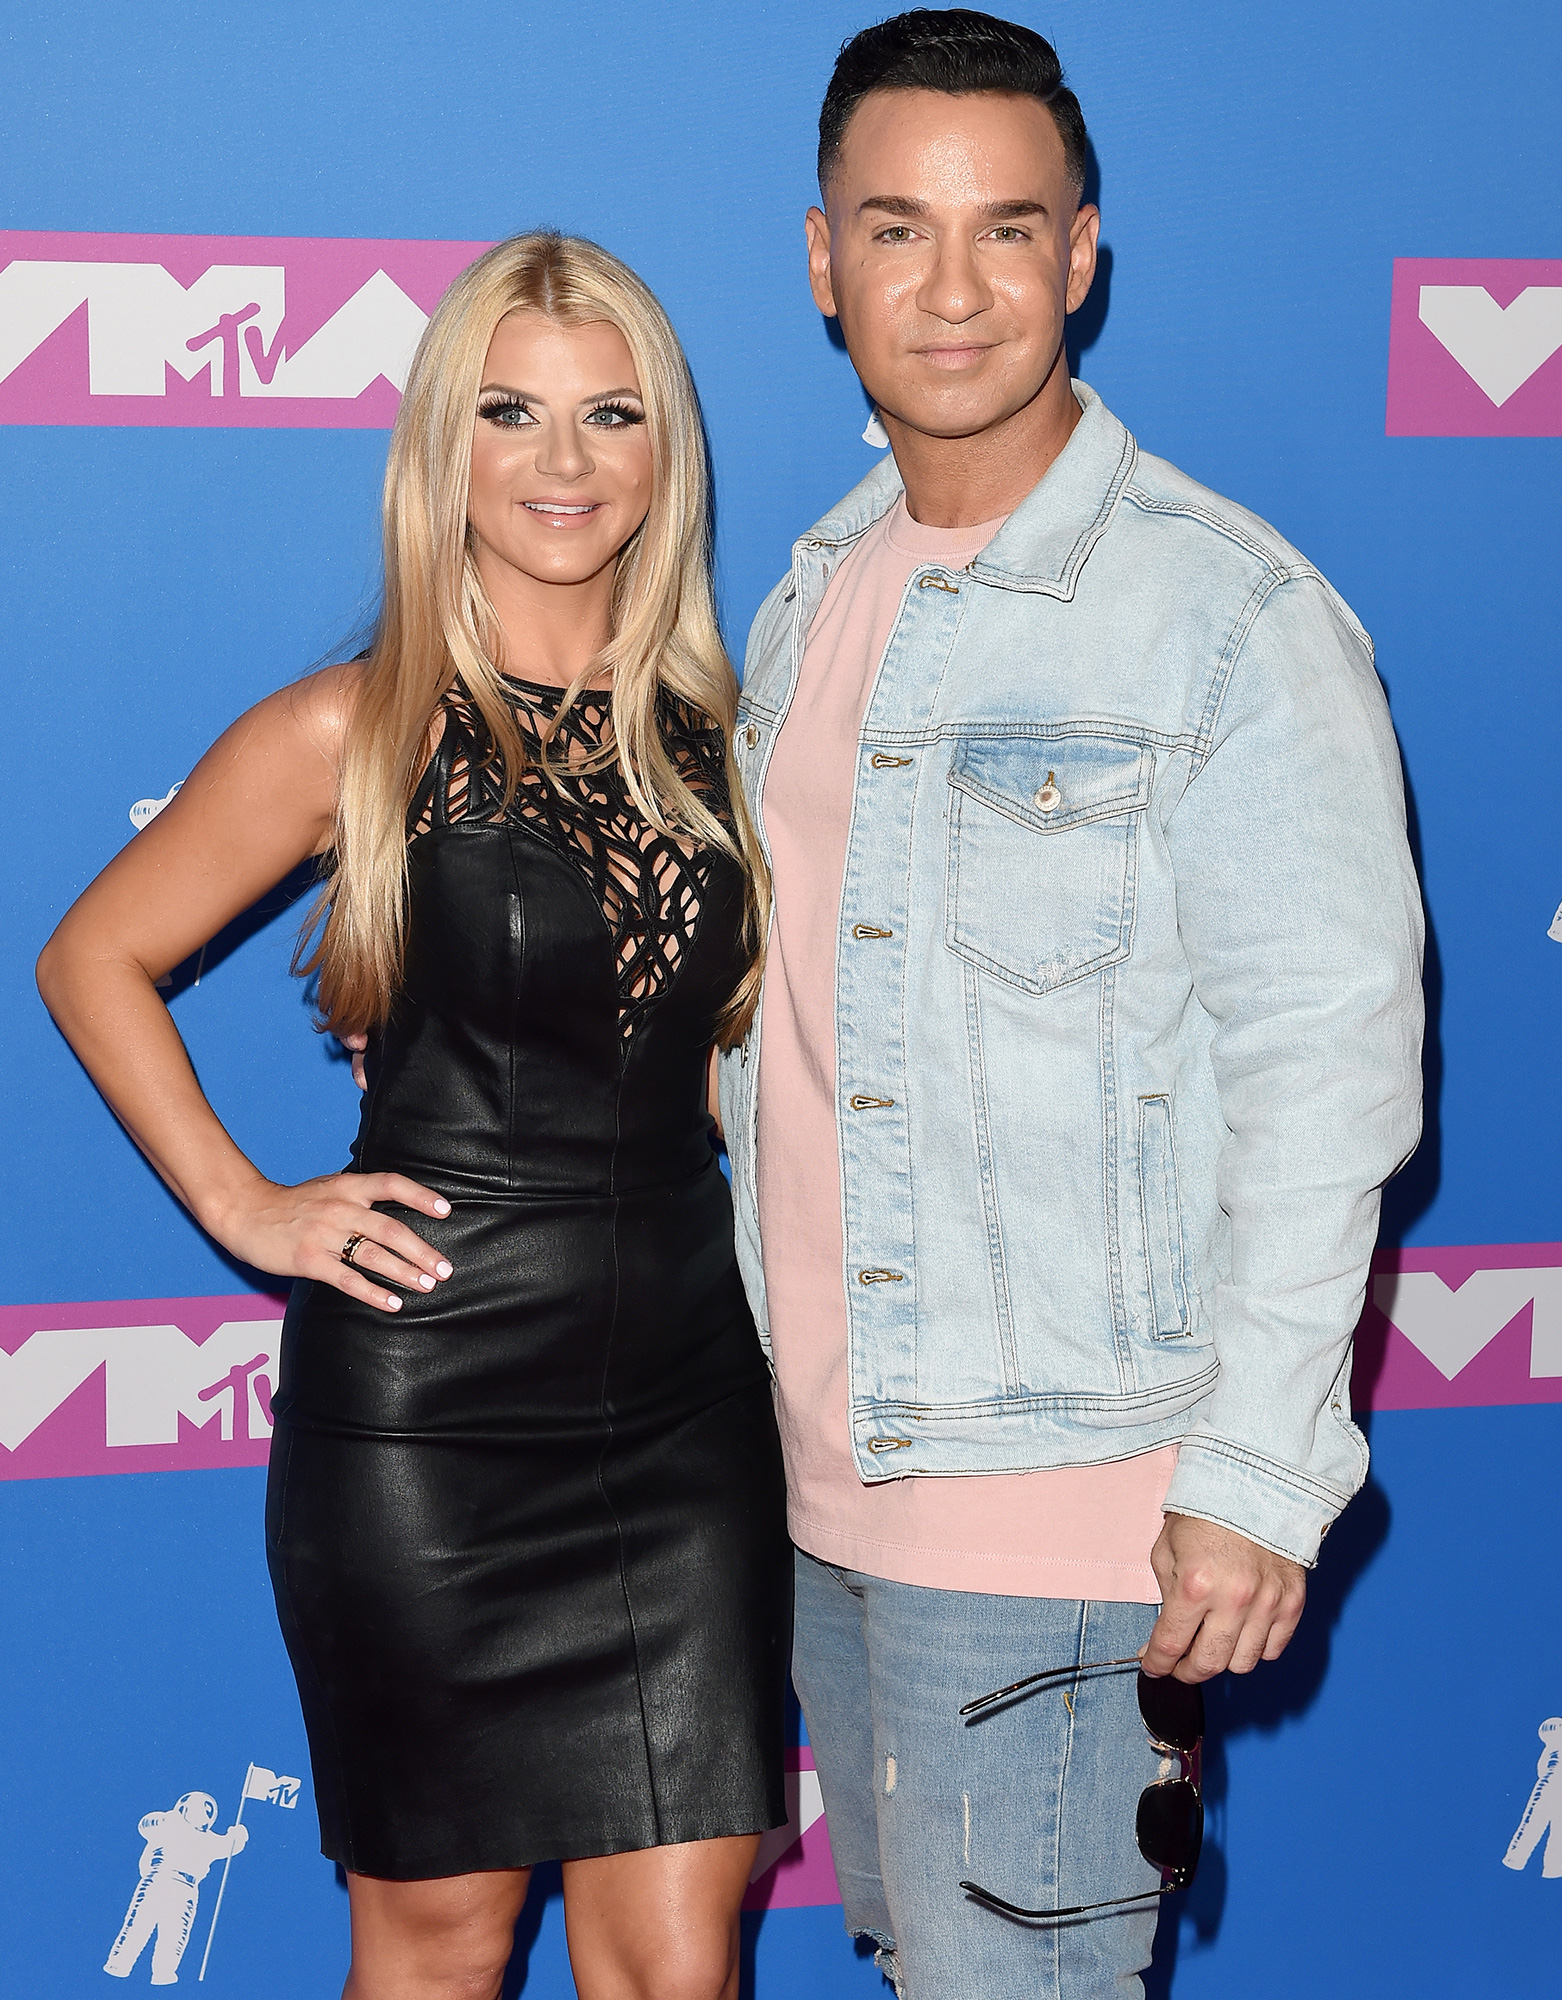 Mike Sorrentino, Lauren Pesce, Court, Instagram - Lauren Pesce and Mike Sorrentino attend the 2018 MTV Video Music Awards at Radio City Music Hall on August 20, 2018 in New York City.